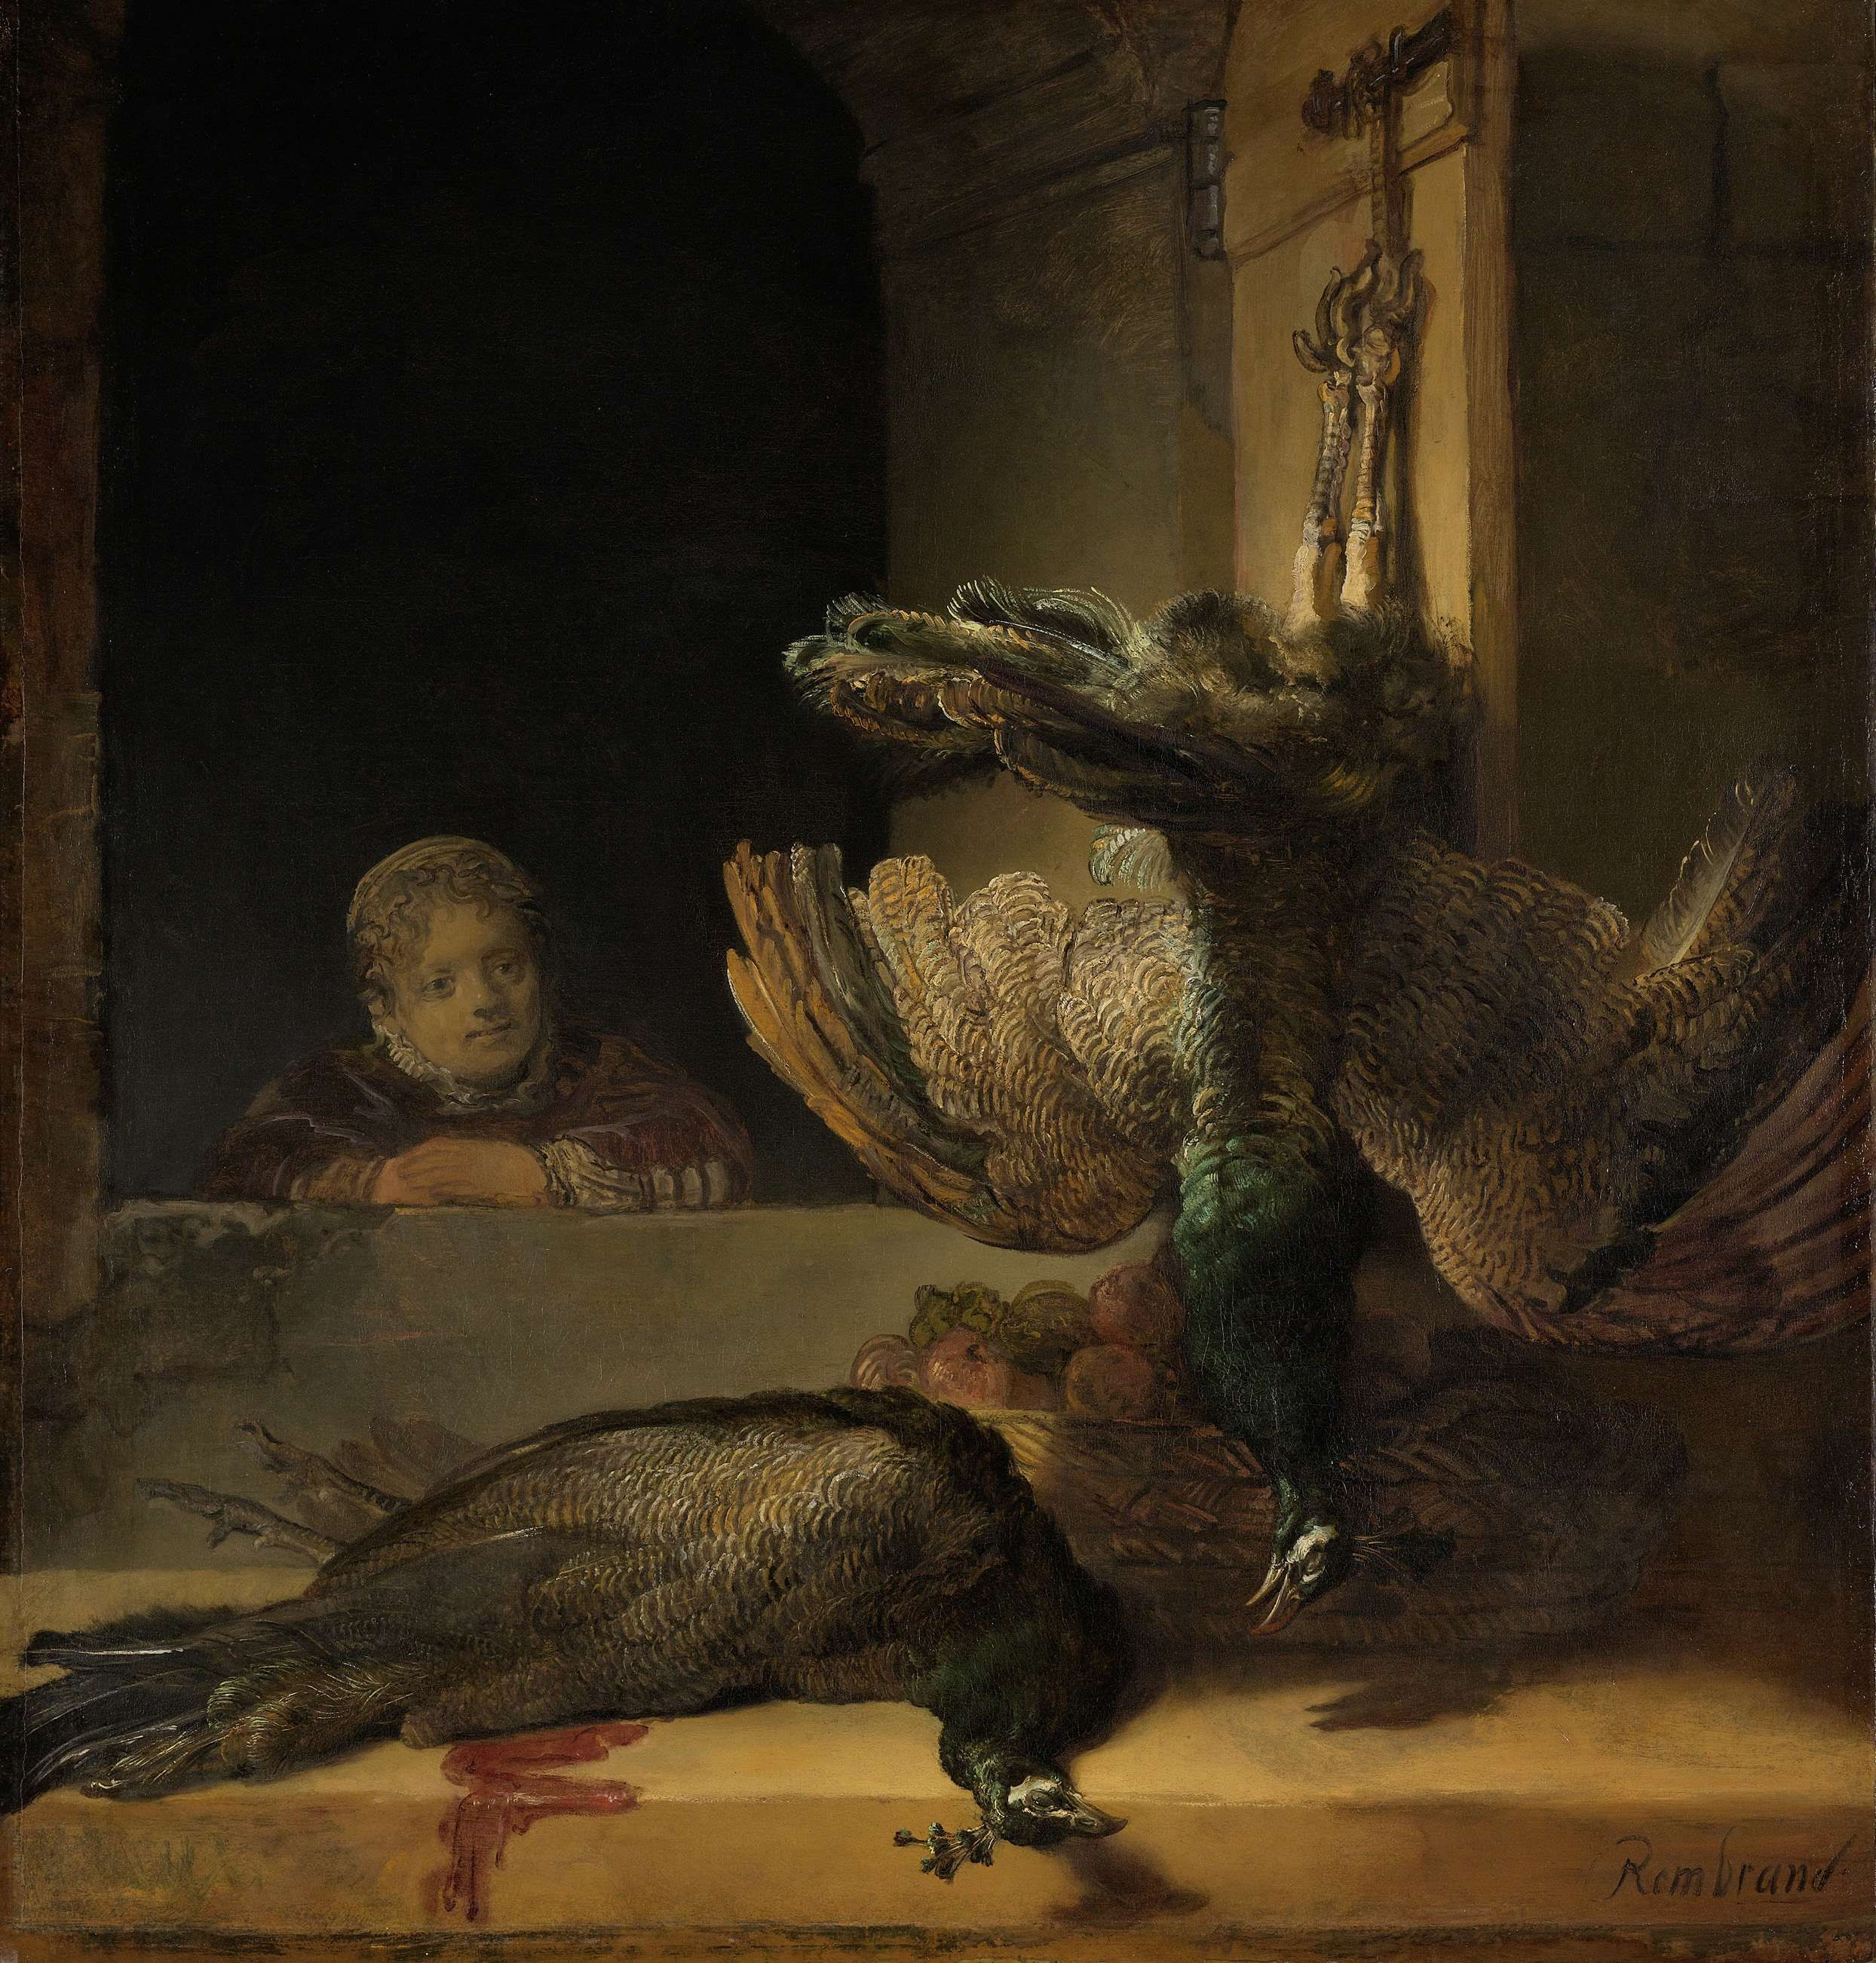 Still Life with Peacocks, Rembrandt Harmensz. van Rijn, ca. 1639